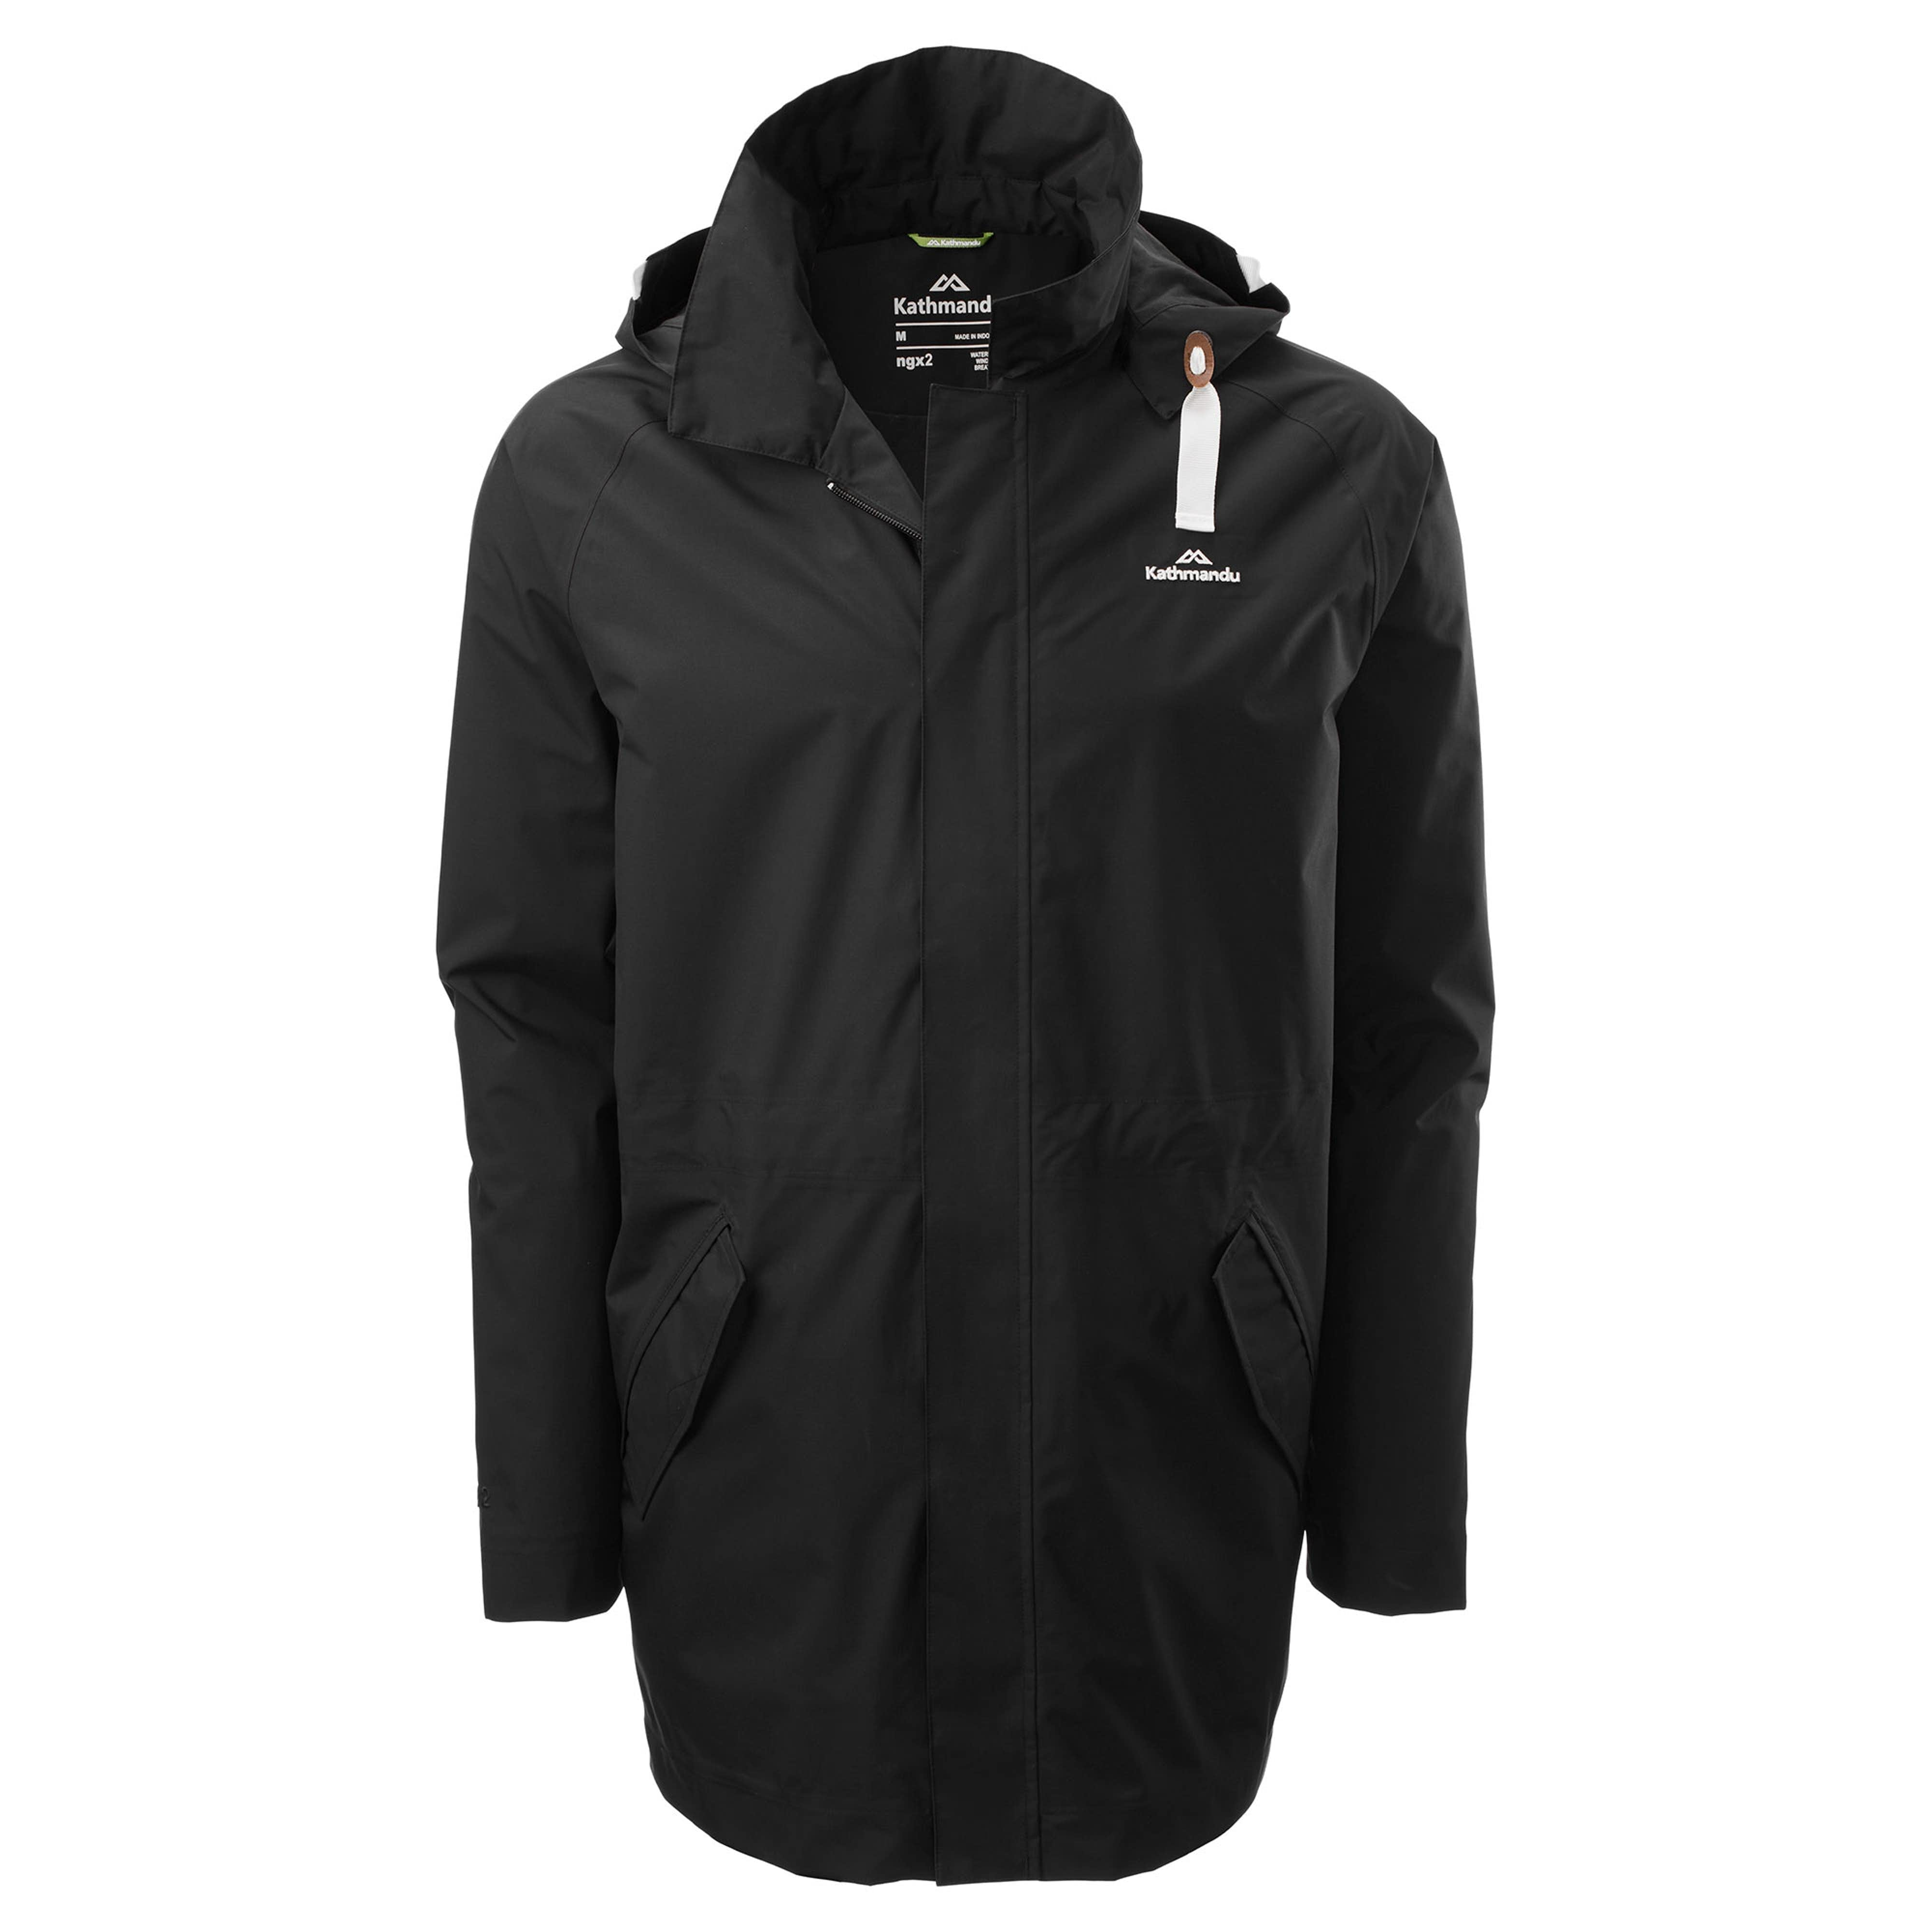 efe861bd68 Kathmandu Outlet | Reduced for Clearance Travel & Adventure Gear